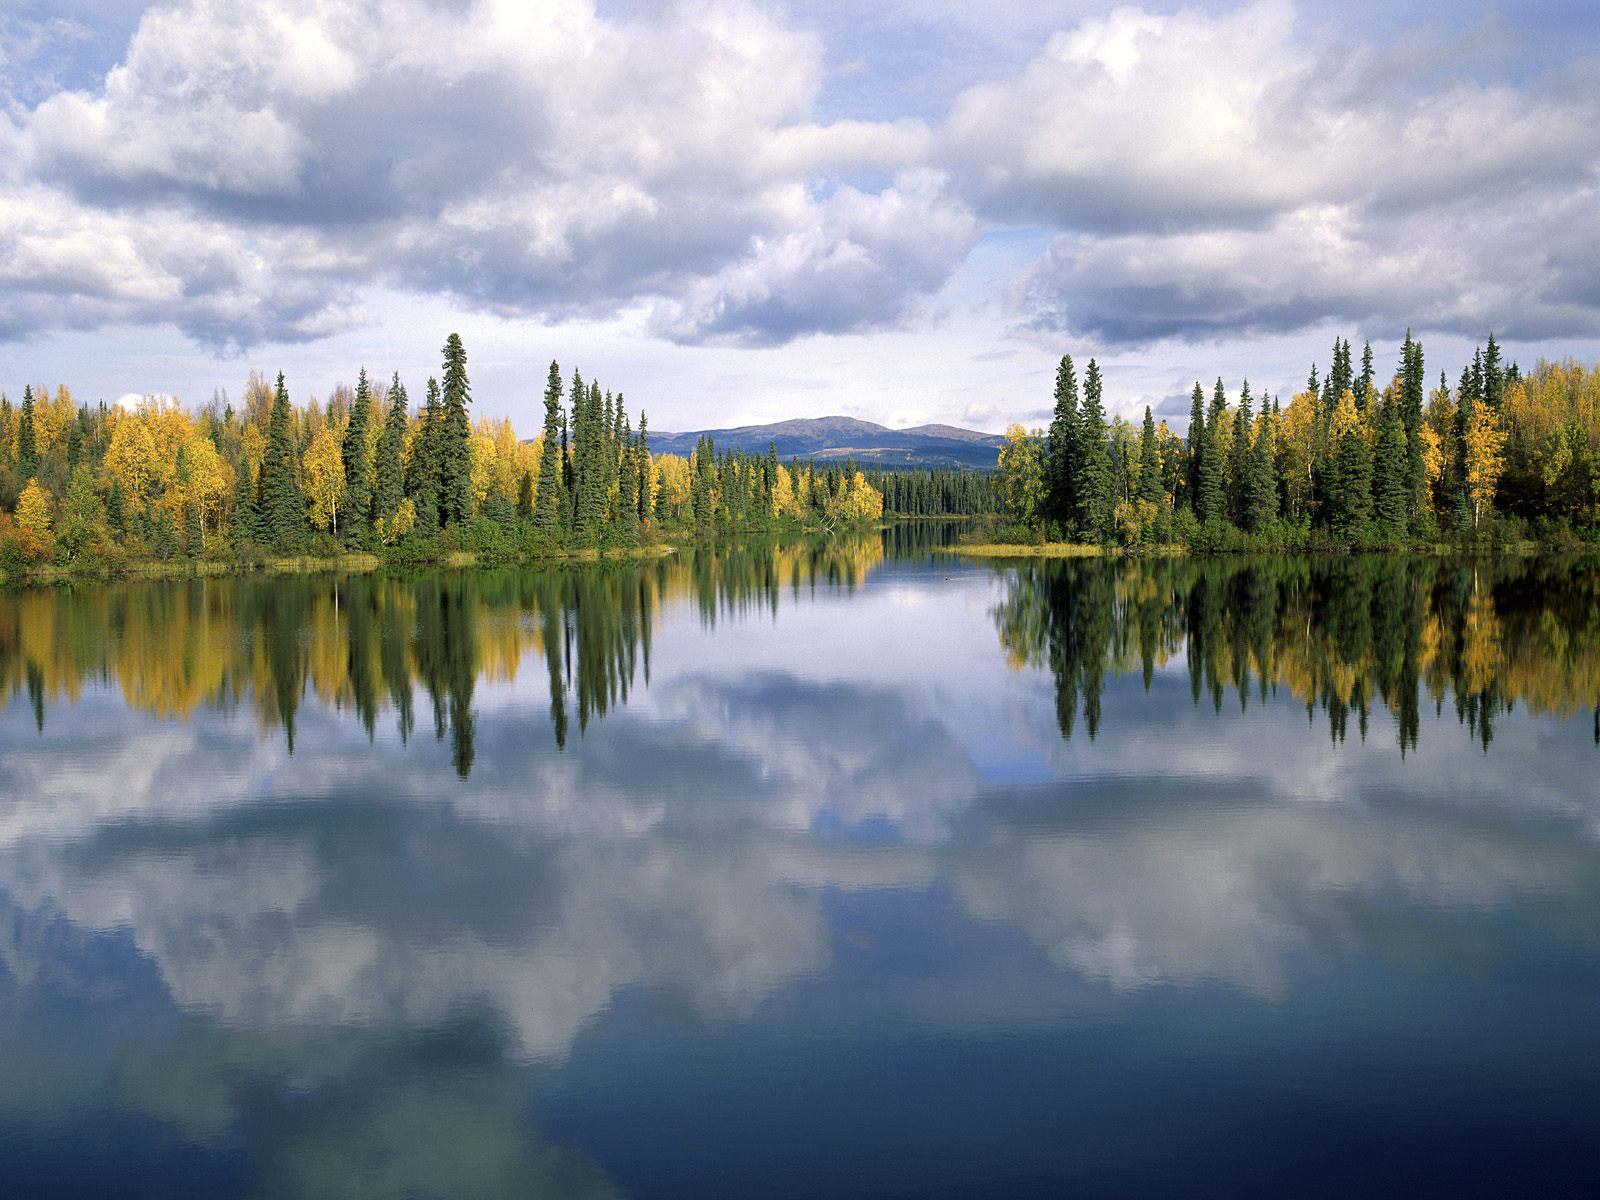 yukon wallpaper lake